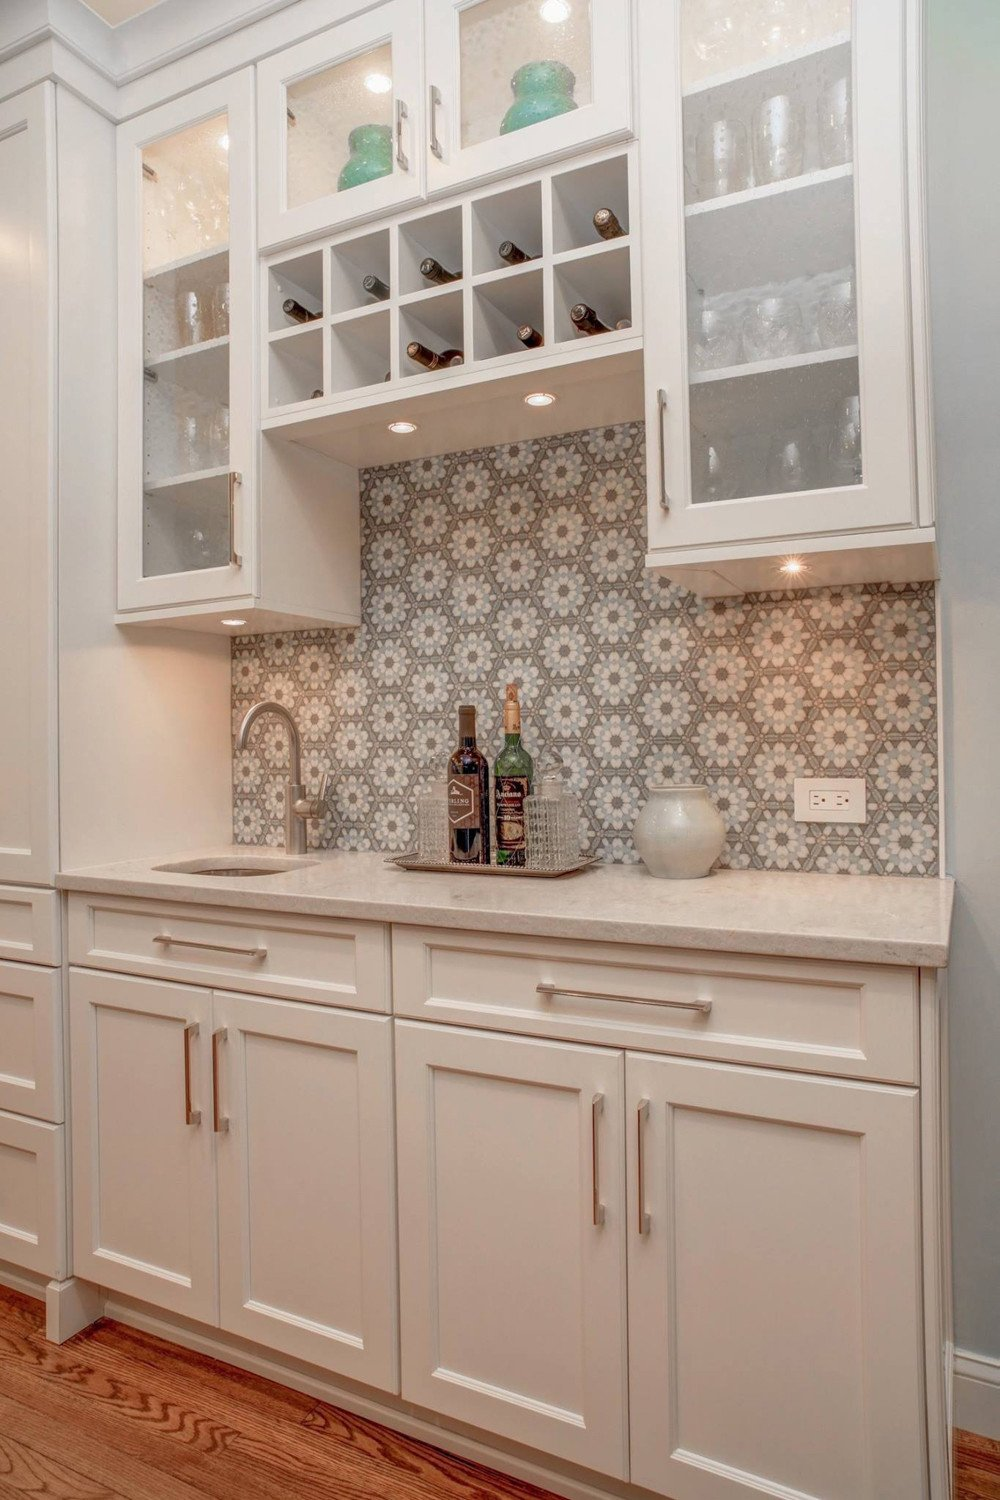 Floor and Decor Backsplash Tile Lovely Kitchen Tile — Studio Tile & Stone